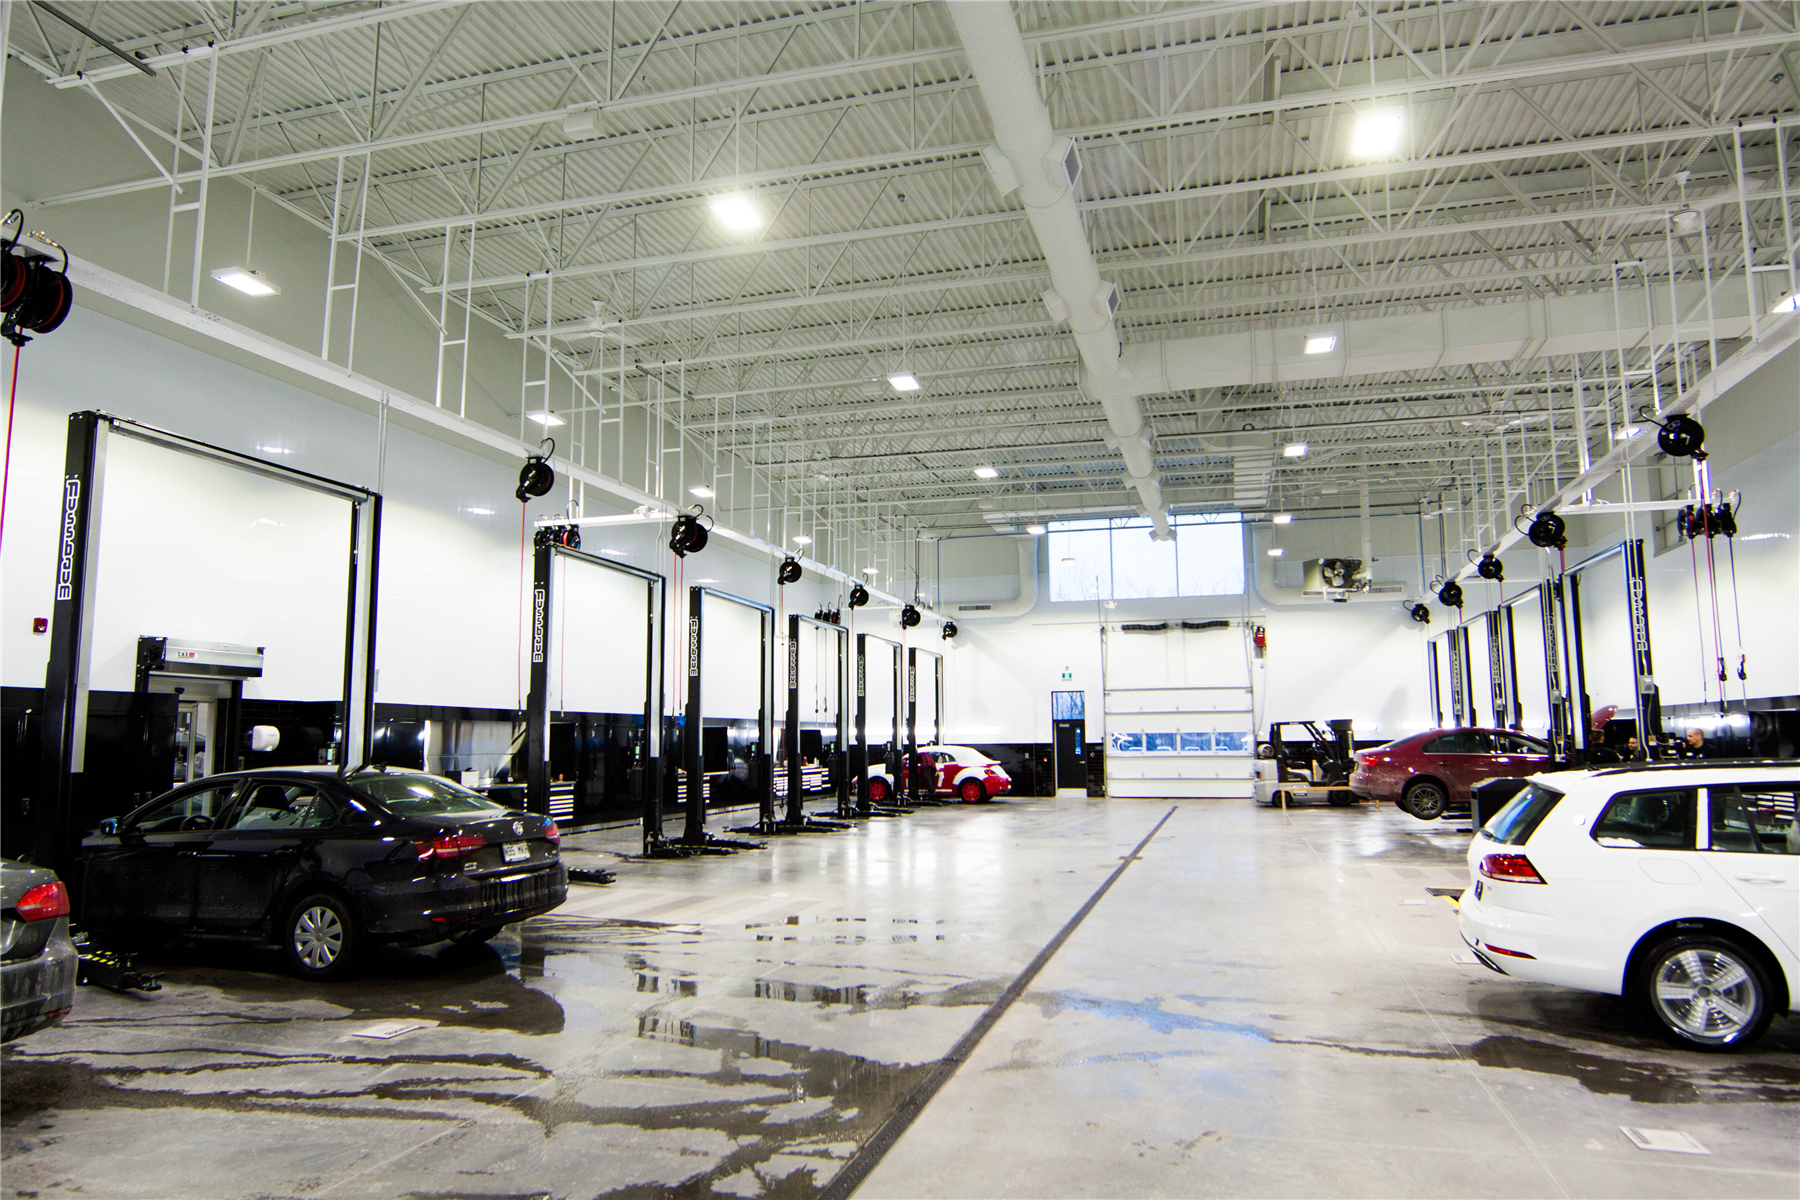 Volkswagen Car Dealership, Canada